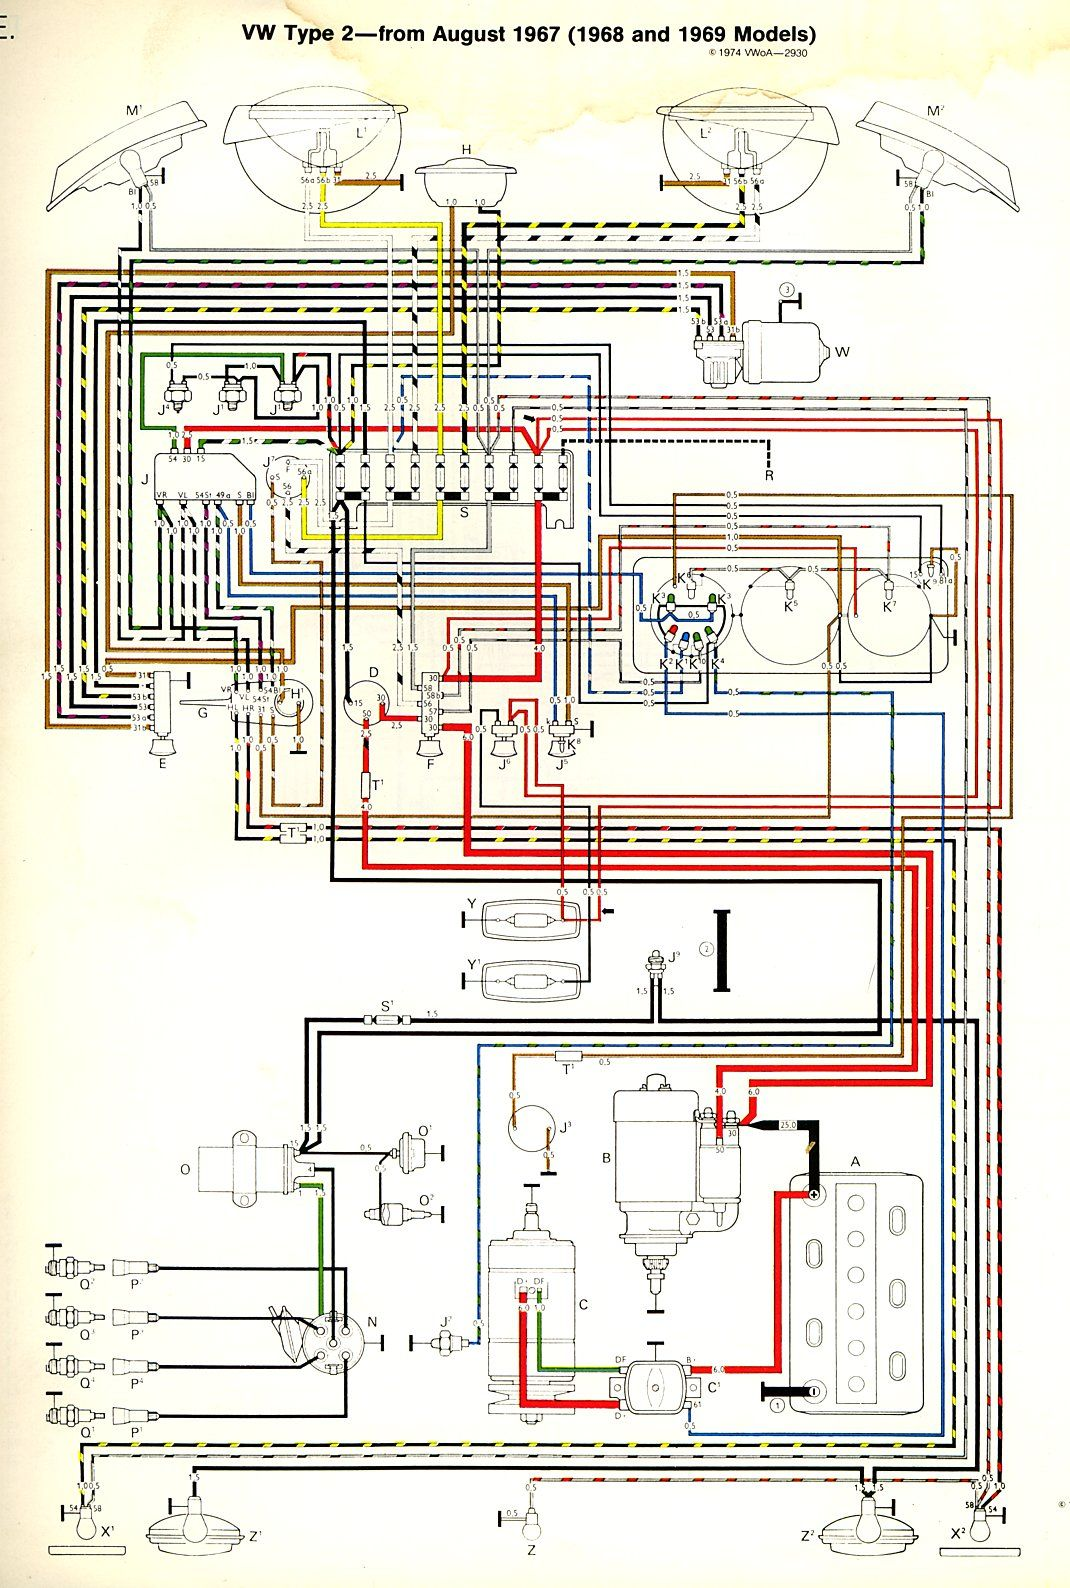 wiring test pinterest 1970 vw beetle wiring diagram 1967 vw beetle wiring diagram #19